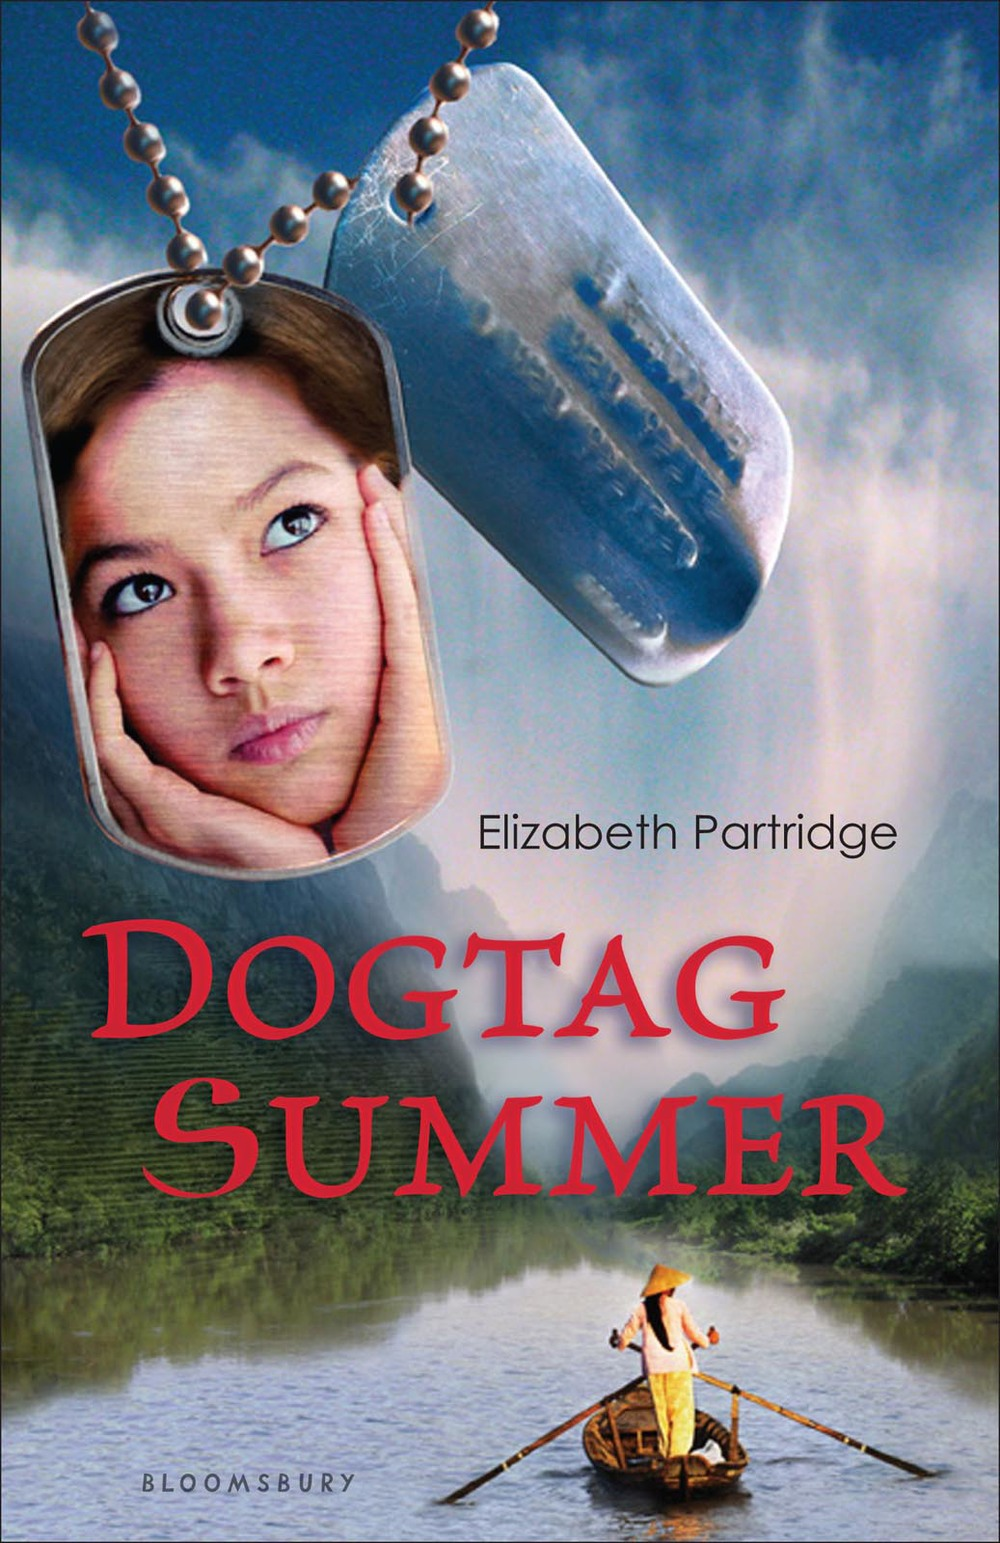 Dogtag Summer (novel)